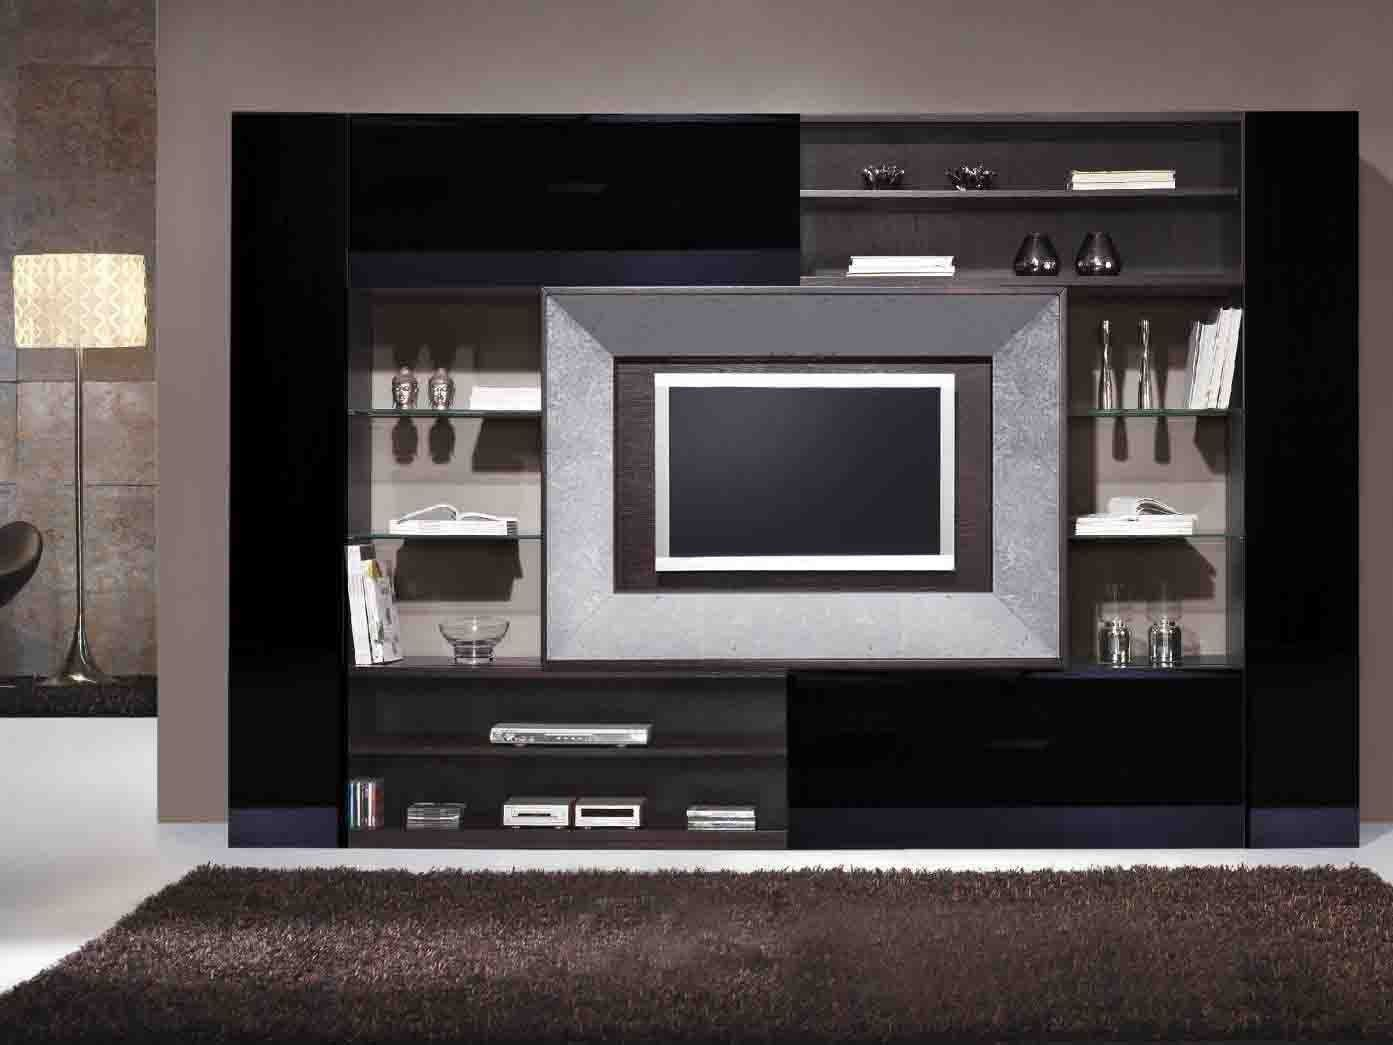 Chennaino1 interiors lcd wall design tv showcase classic house design interior design advice